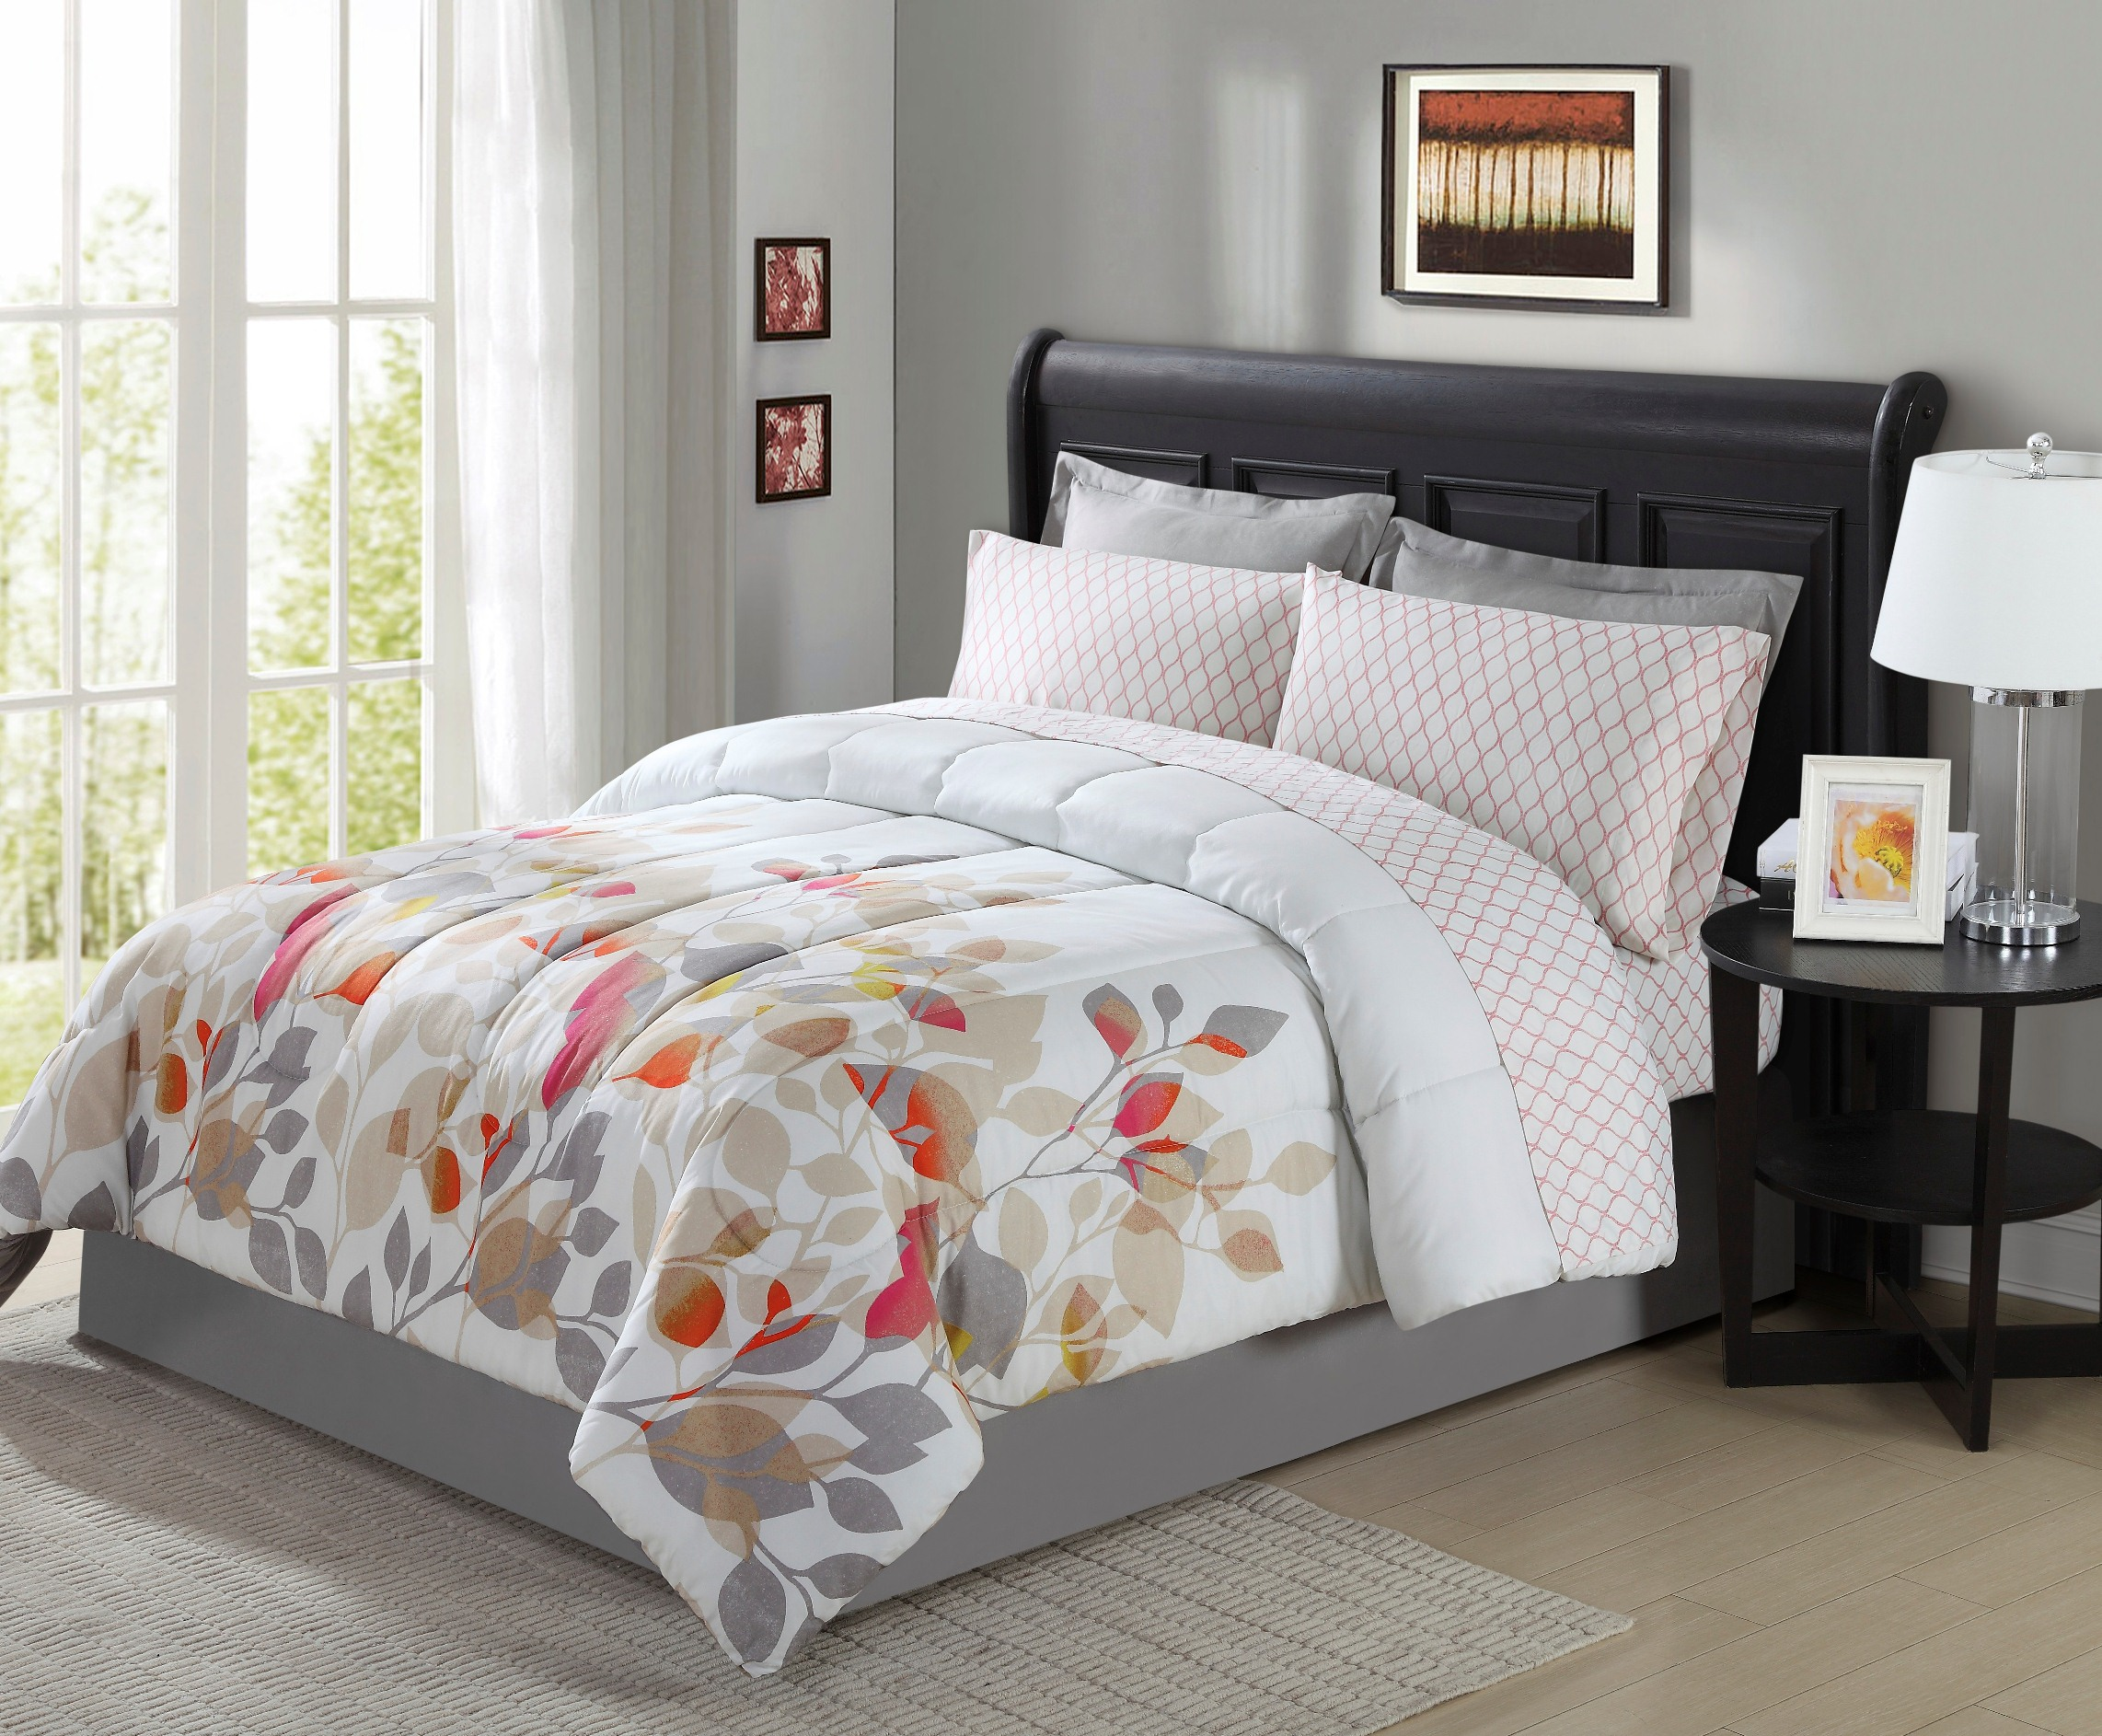 Colormate Complete Bed Set